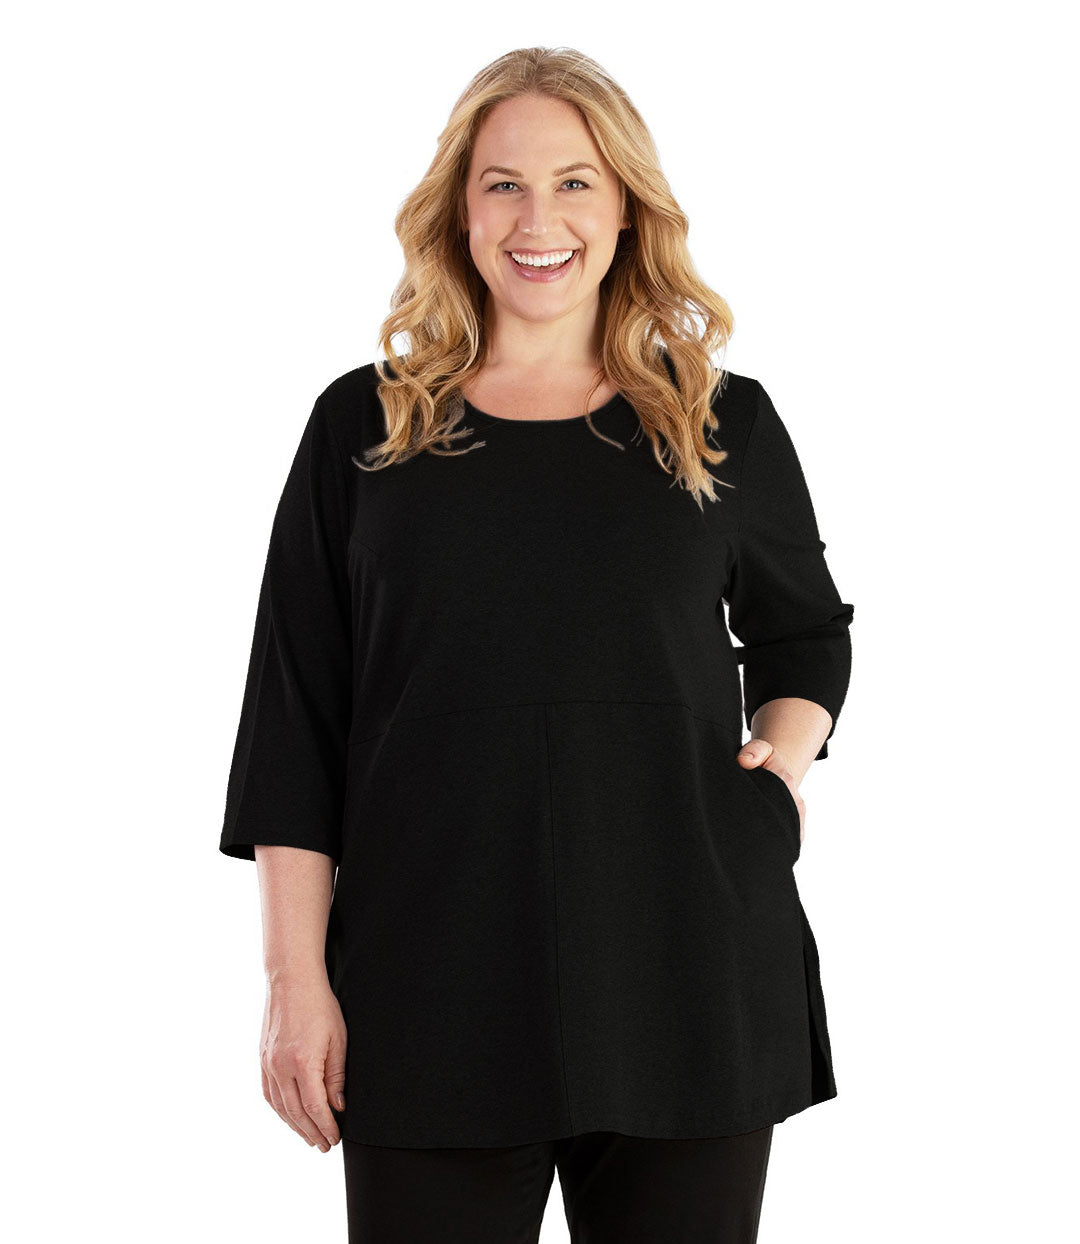 Stretch Naturals Empire Tunic with Pockets Basic Colors-Tops 3/4 Sleeve Tunic-Hop Wo Trading Co Ltd-XL-Black-JunoActive